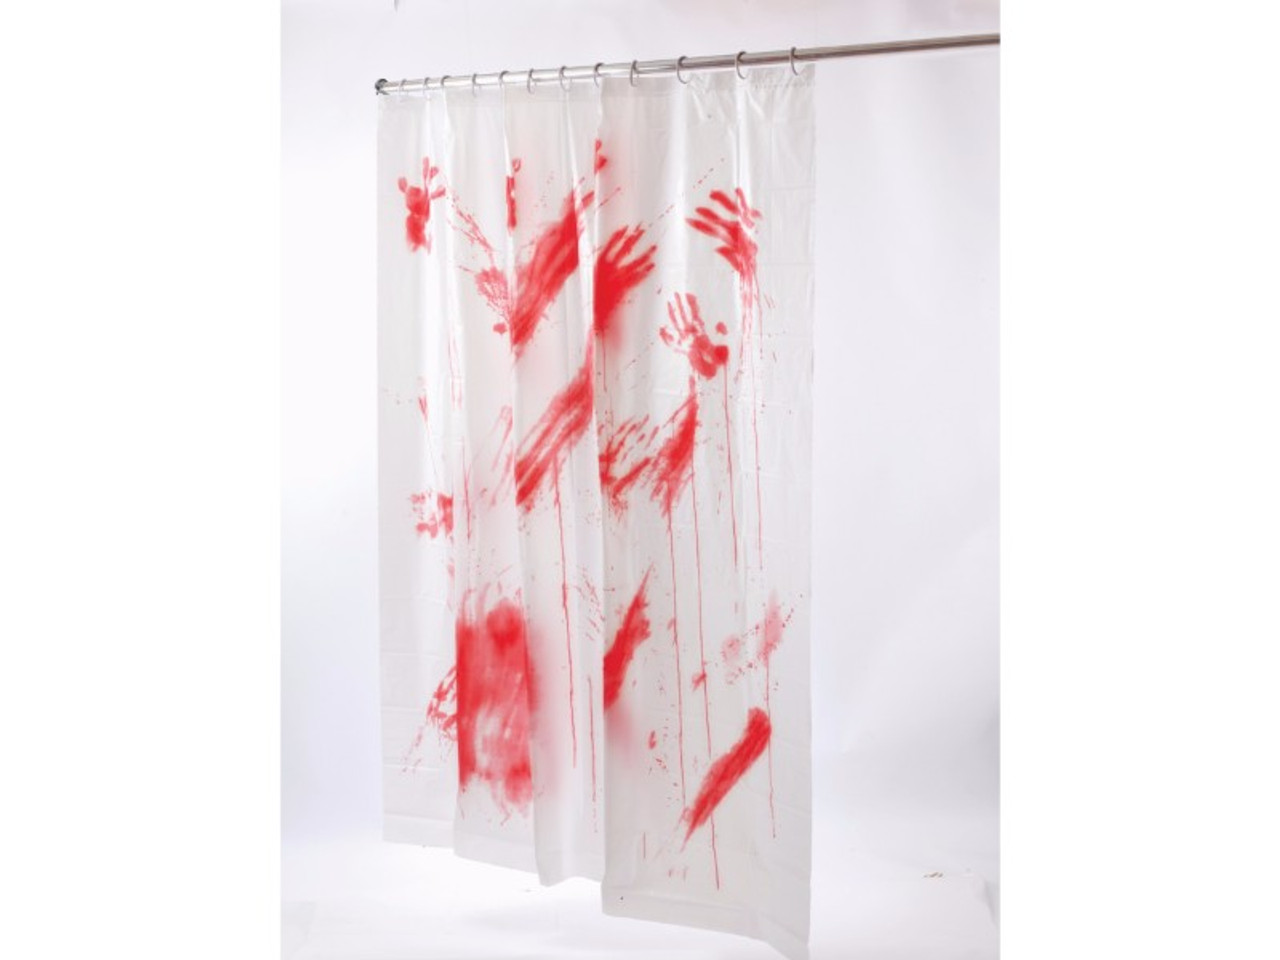 Is The Bathtub Safest Place To Commit A Murder Perhaps This Bloody Shower Curtain